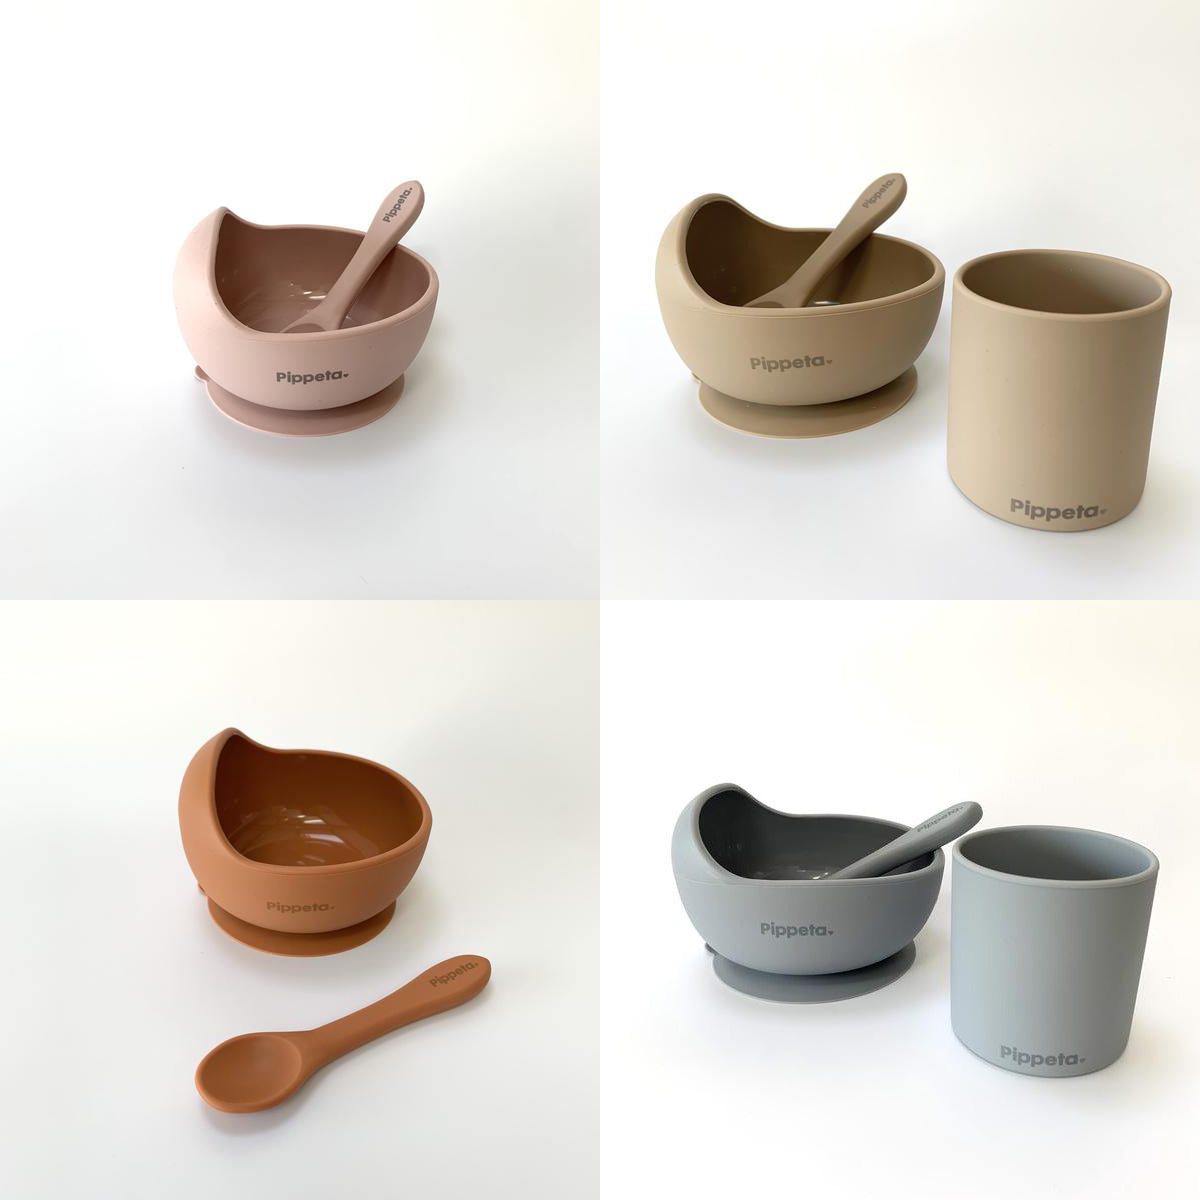 Pipetta Suction Bowl and Spoons